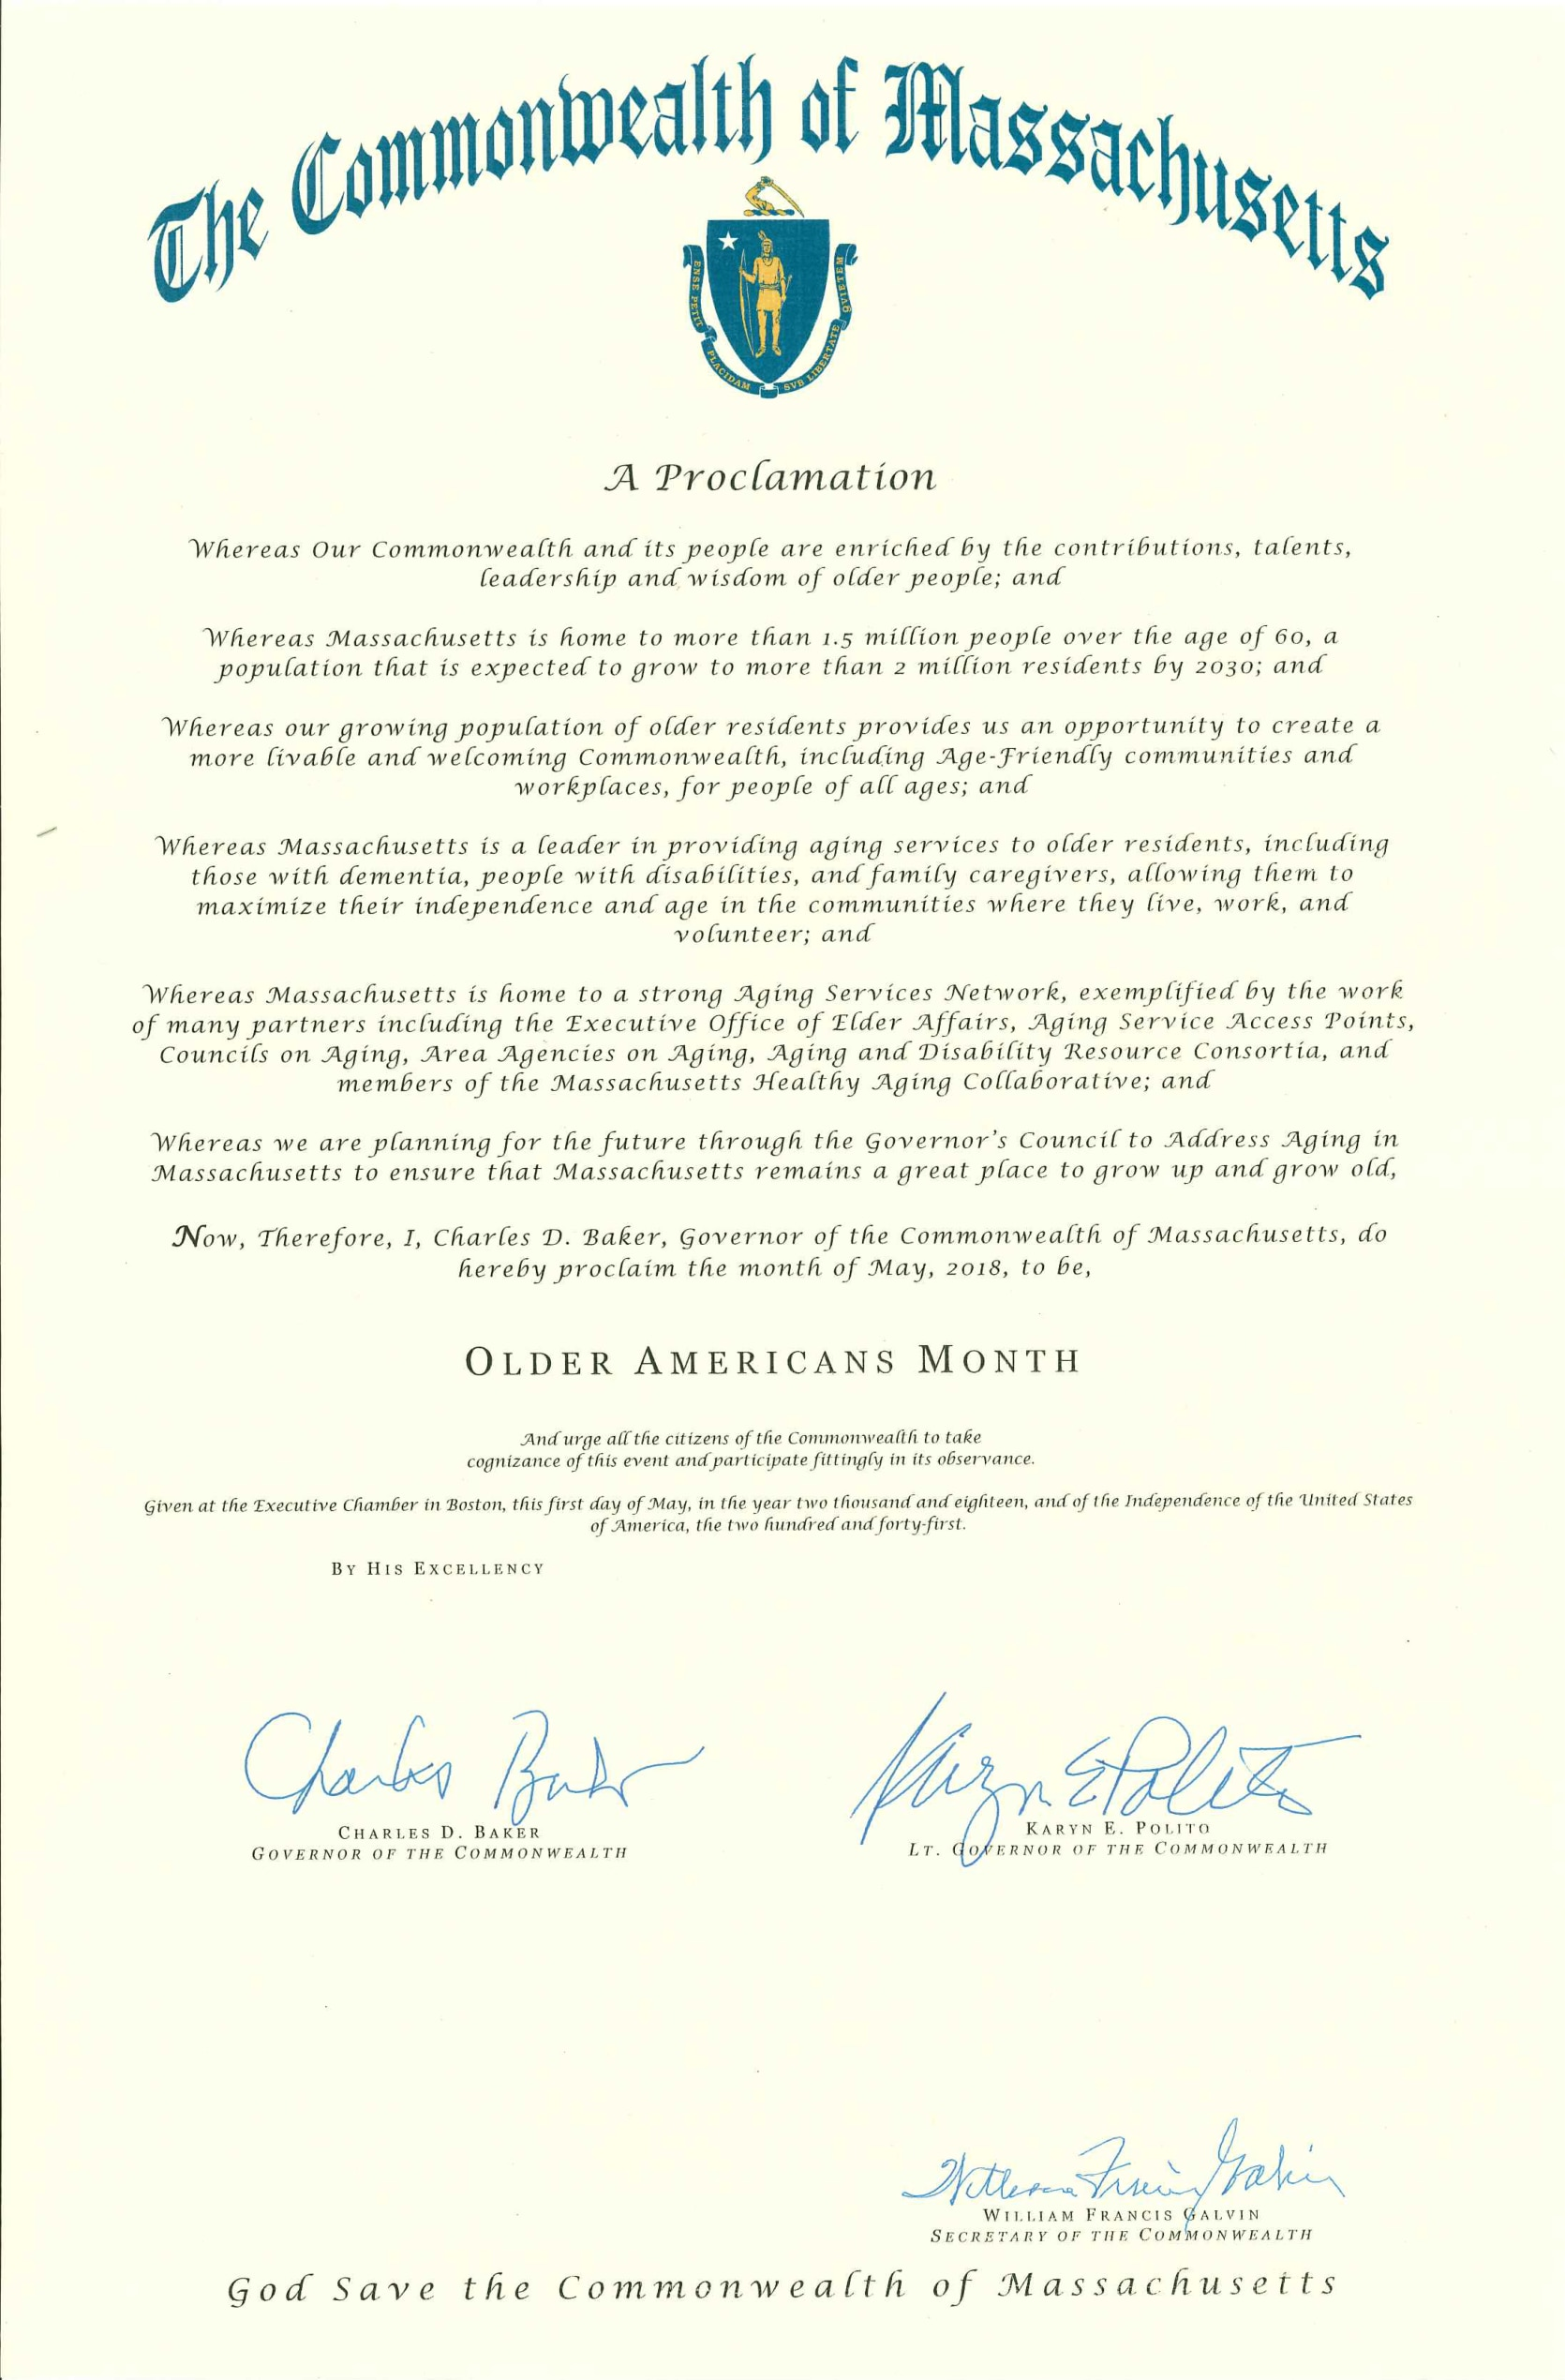 Image of Governor Baker's Proclamation for Older Americans Month, May 2018